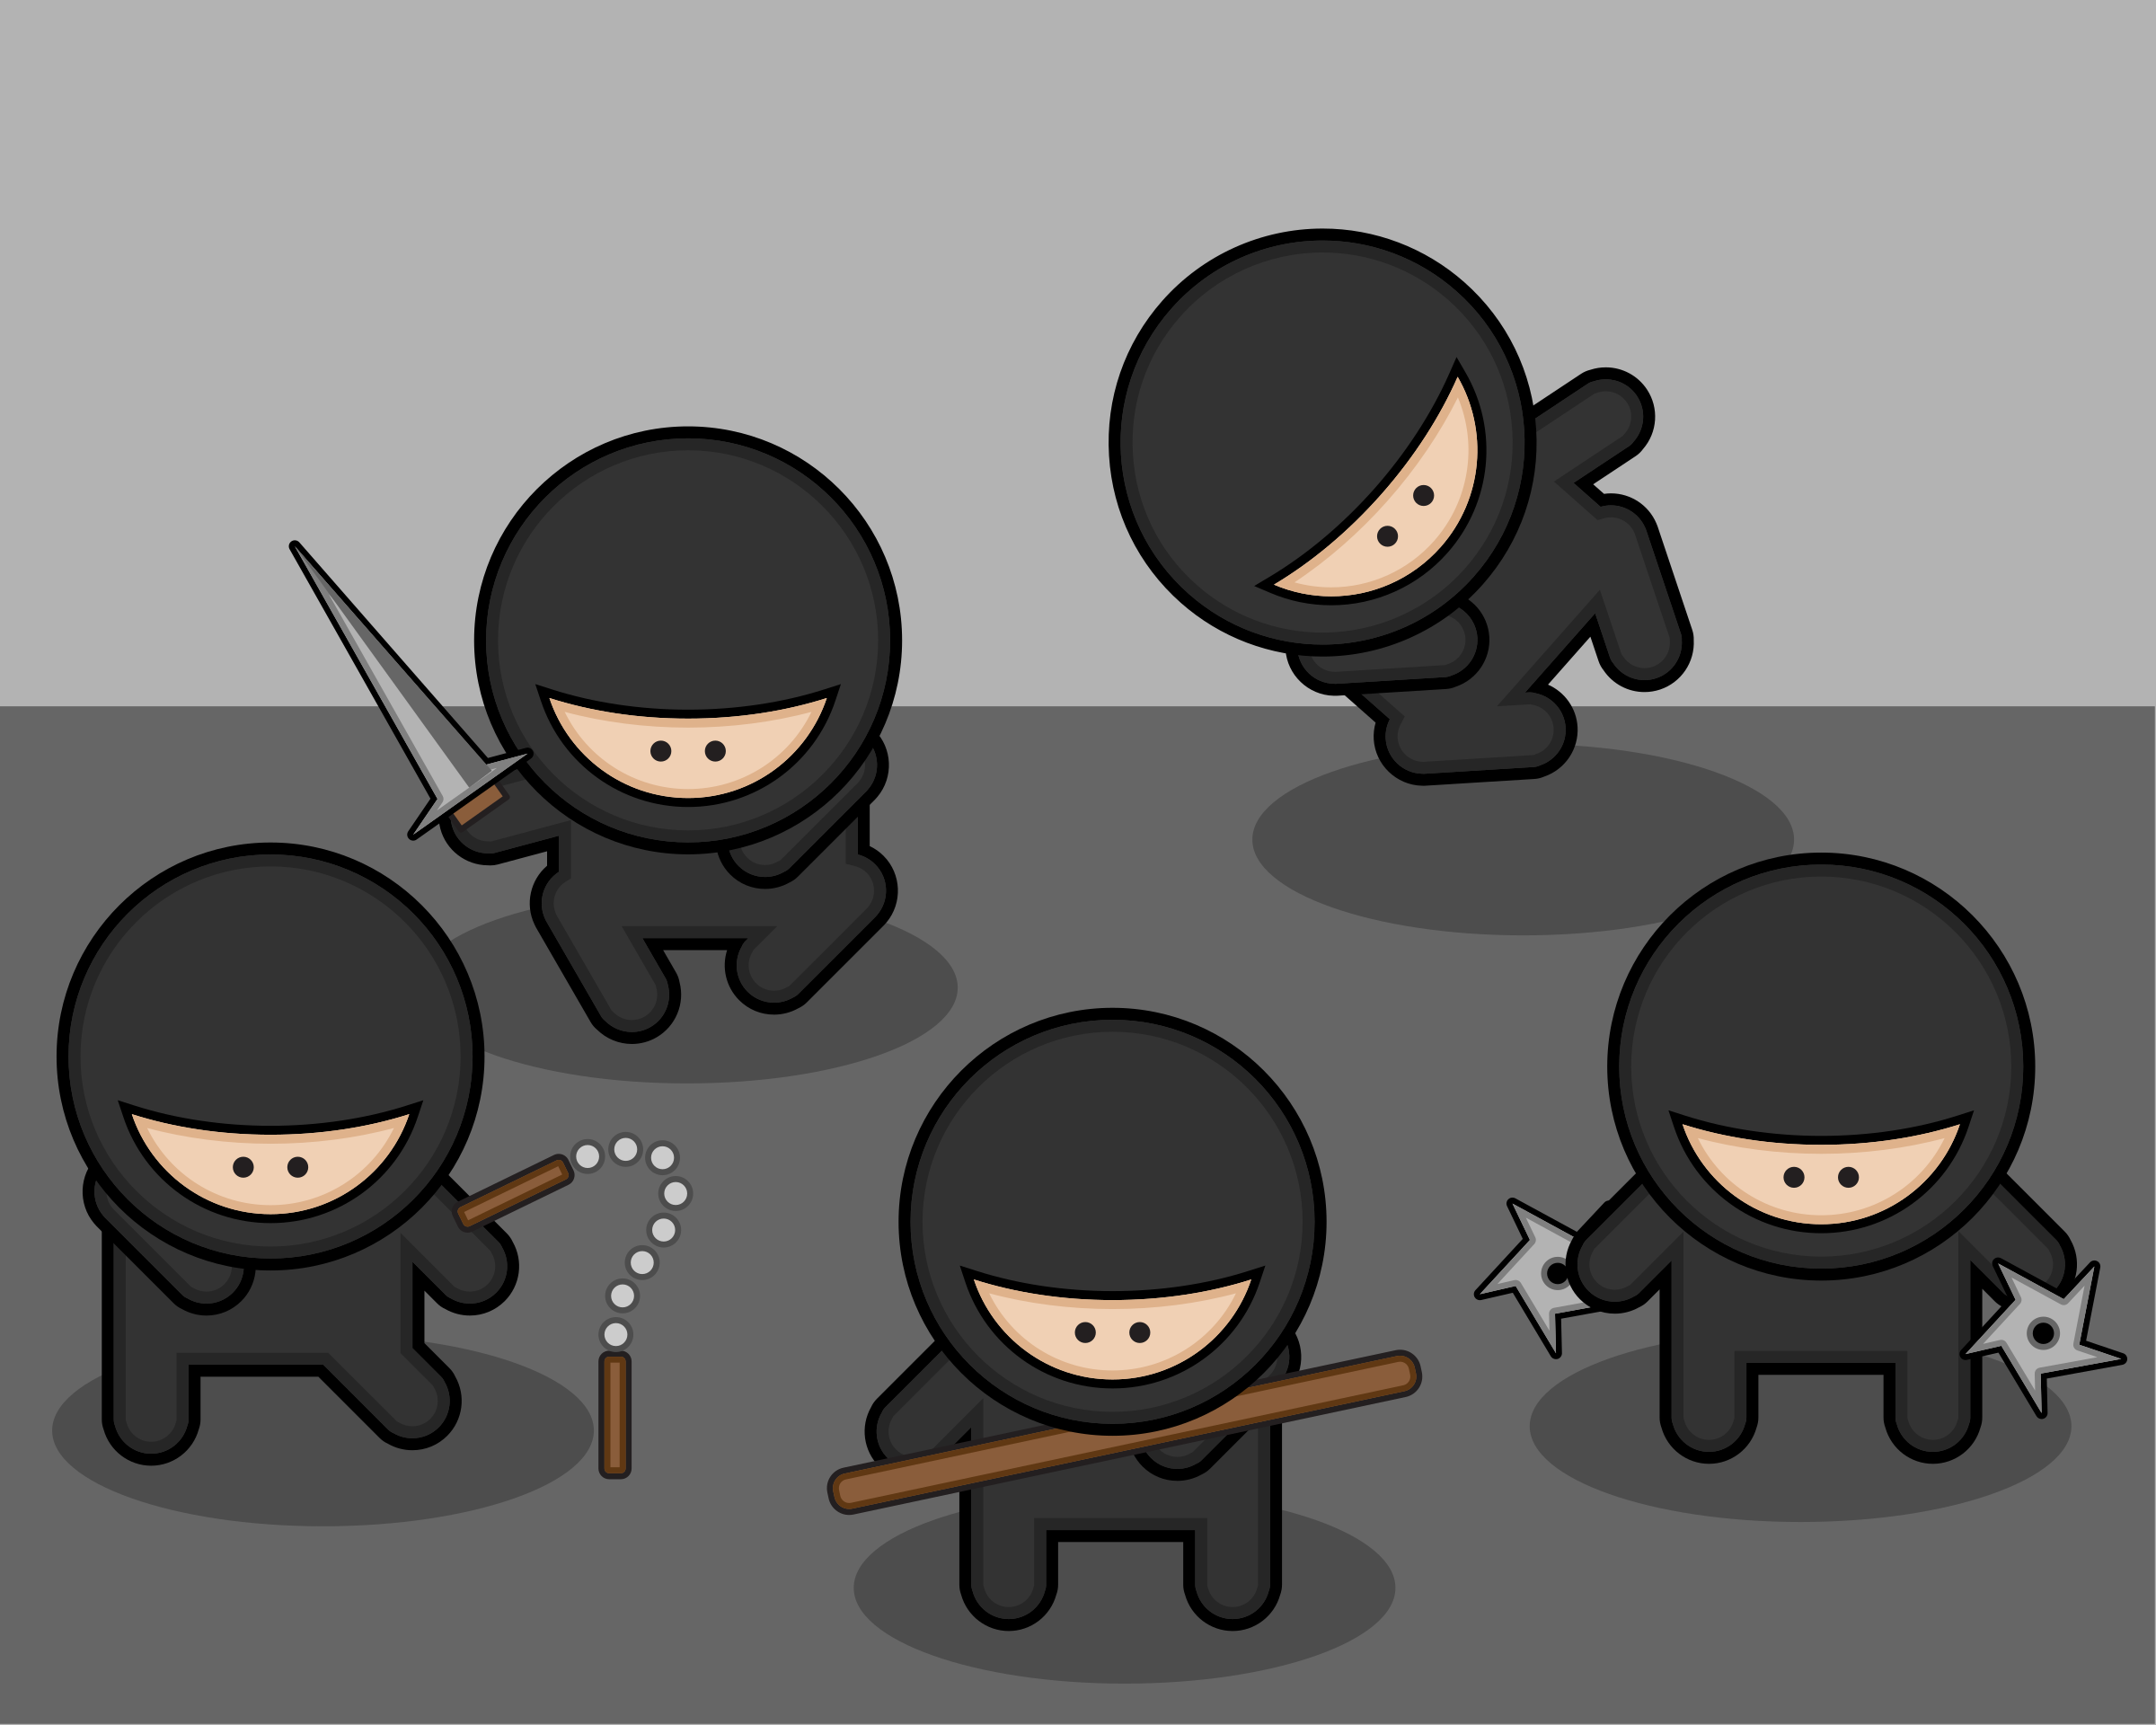 Cartoon ninjas by StudioFibonacci